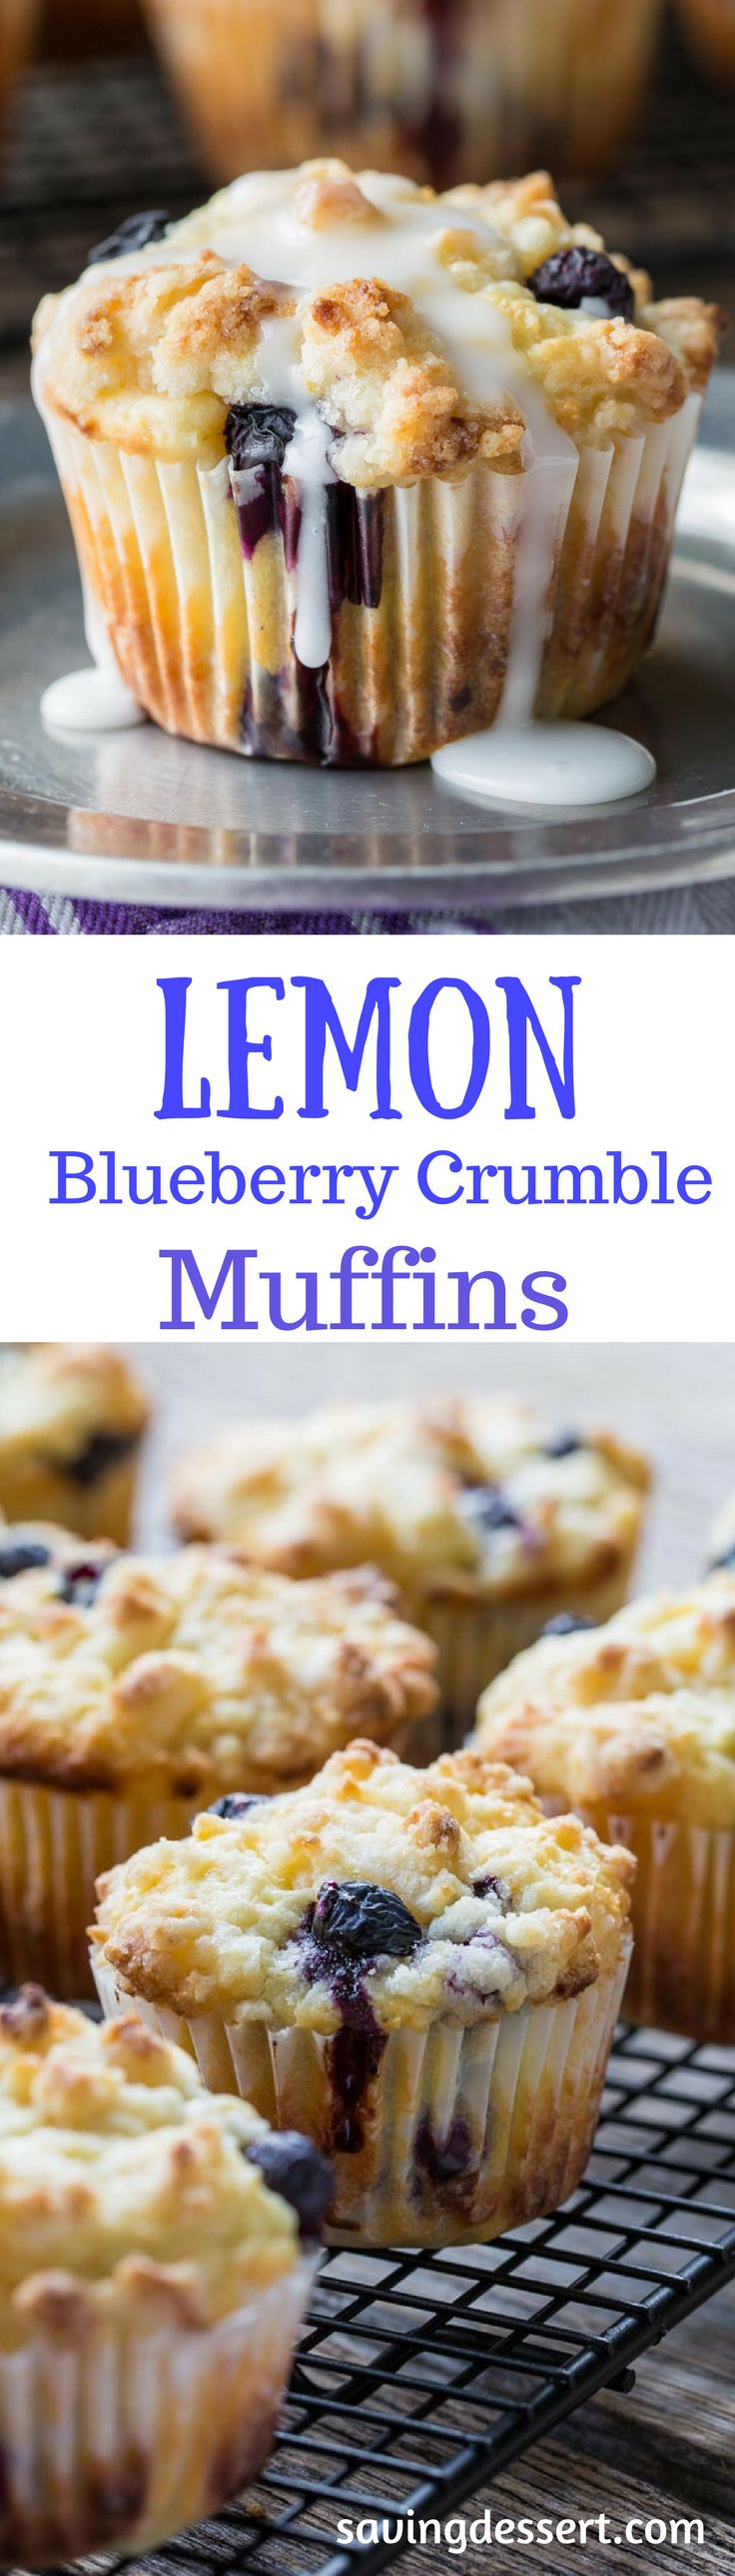 Lemon Blueberry Muffins with a Lemon Crumble Topping ~ Plump, ripe blueberries and tart, fresh lemon juice are the stars in these wonderfully moist, sour cream muffins. Not overly sweet, these muffins are terrific with or without the bright lemon glaze.  www.savingdessert.com